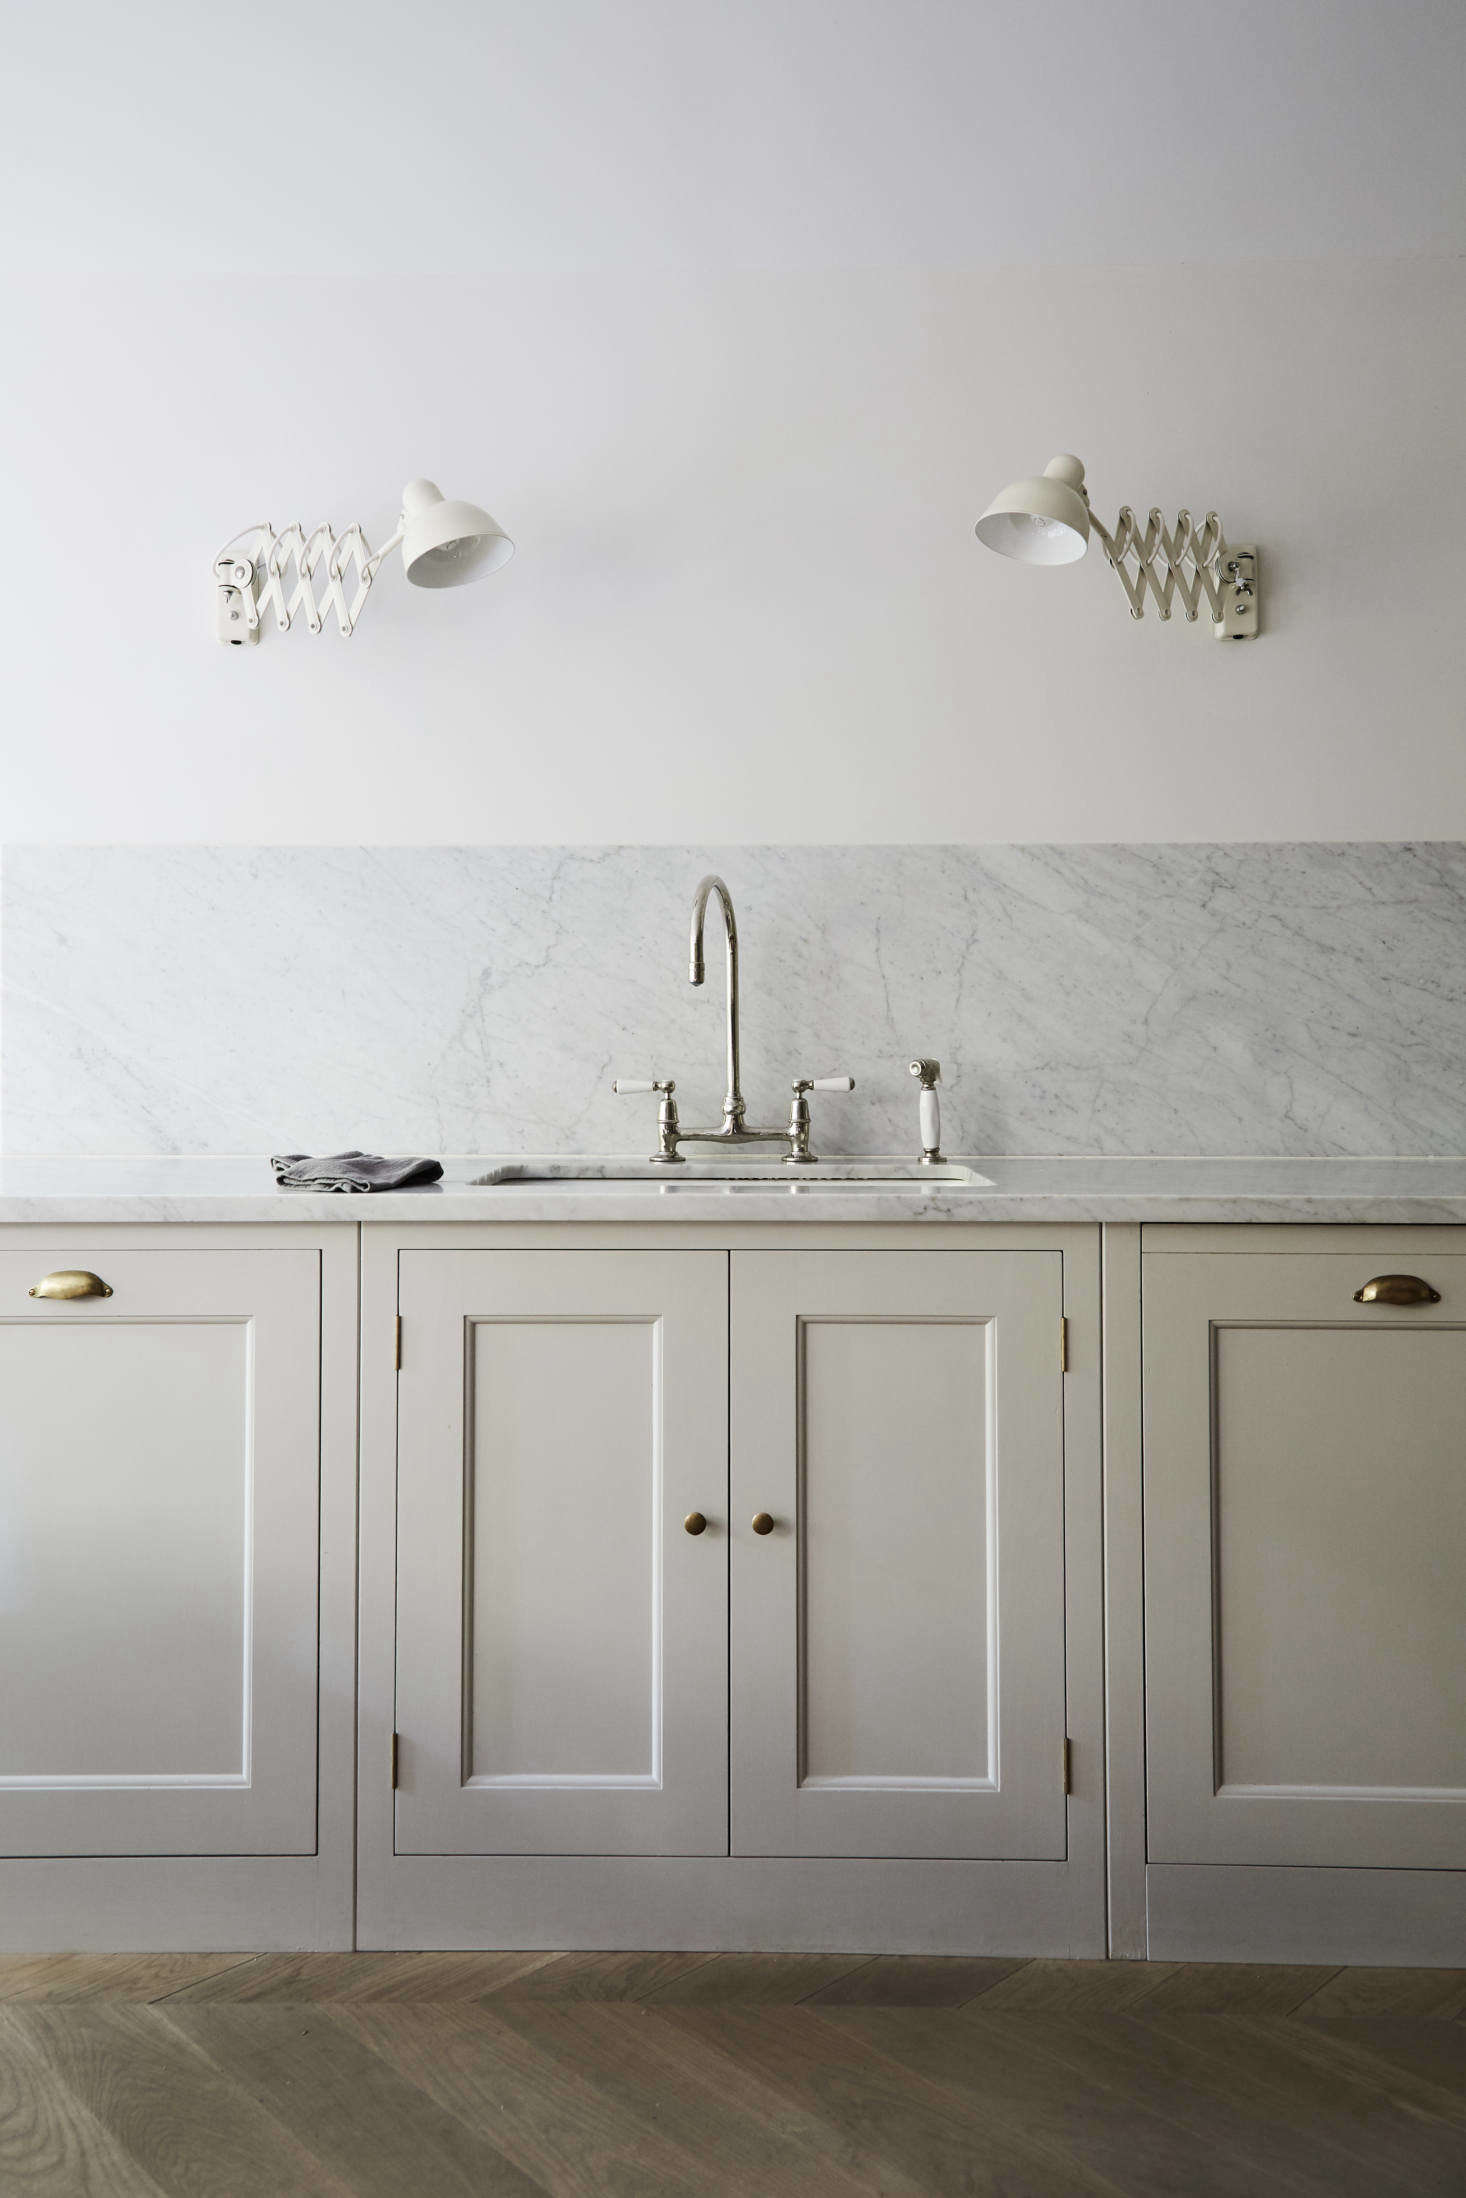 This British inspired kitchen has counters topped with Carrara marble that continue as a backsplash. For more, see Plain English in Brooklyn Heights: A Very Proper Elizabeth Roberts Townhouse Remodel. Photograph byDustin Aksland, courtesy ofElizabeth Roberts Architecture & Design.